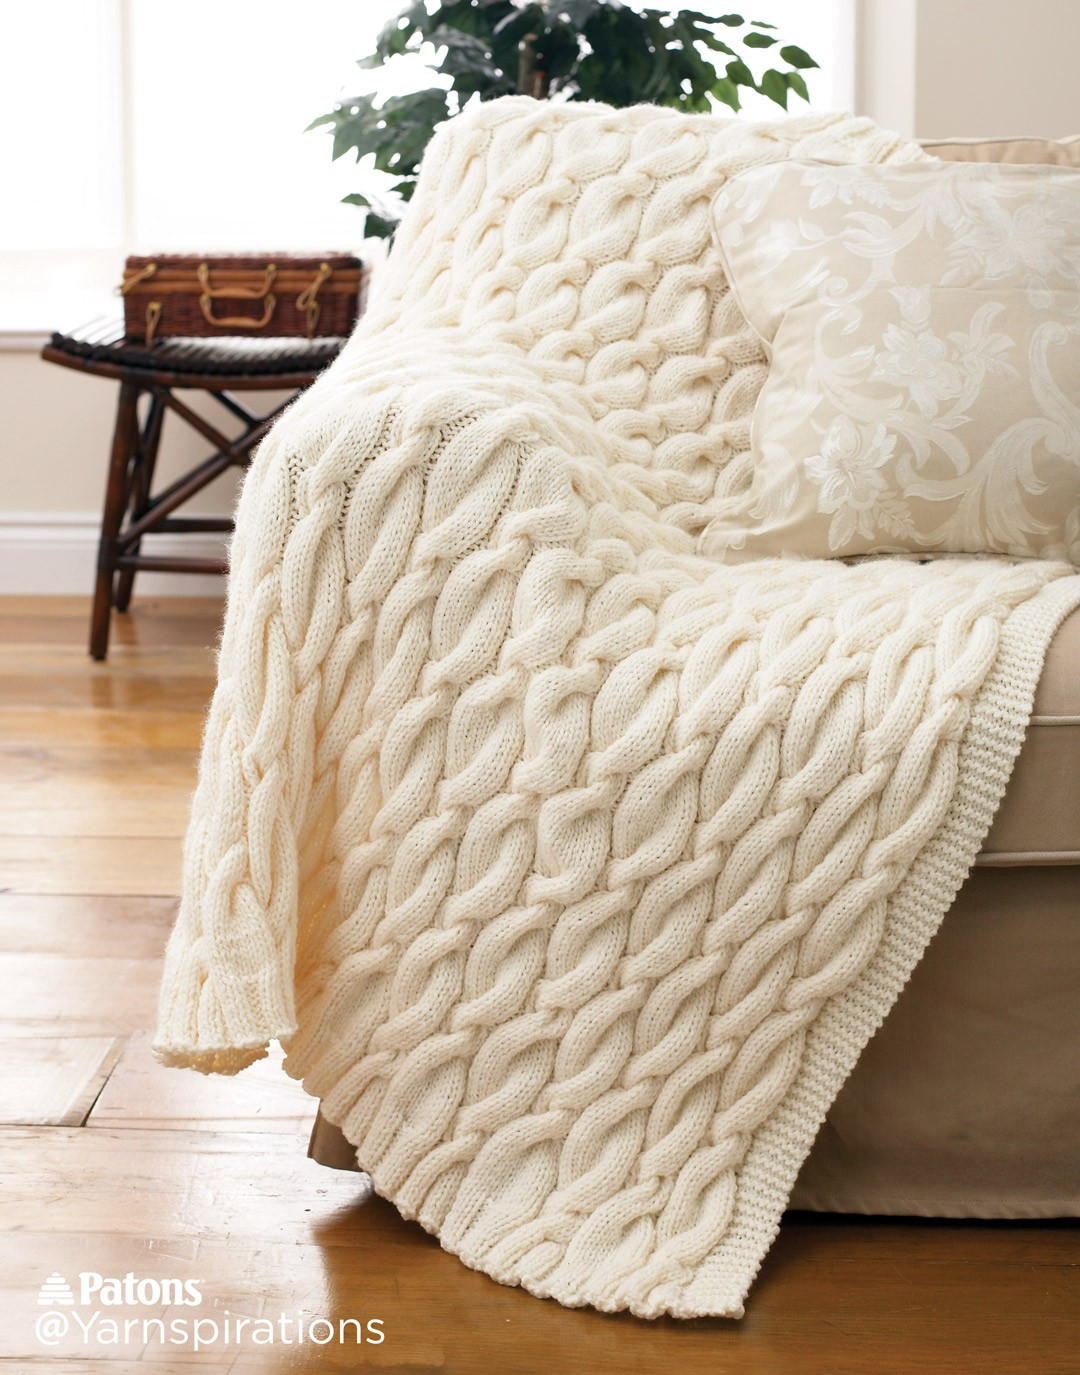 Knitted Throw Elegant Patons Knit Cable Blanket Knit Pattern Of Wonderful 48 Images Knitted Throw